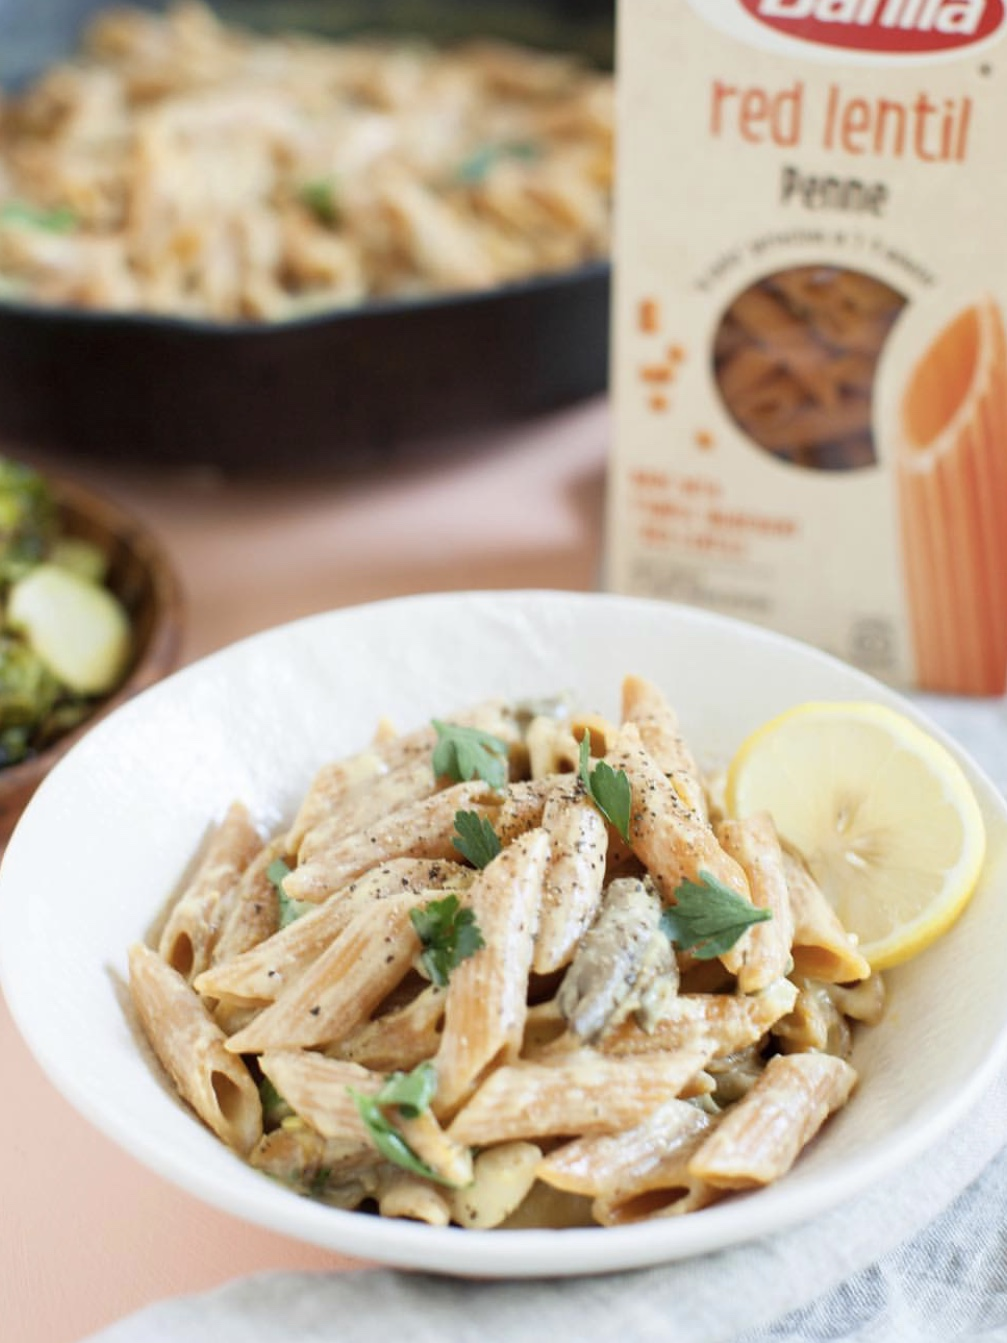 Red Lentil Pasta. Image via @sweetpotatosoul on Instagram